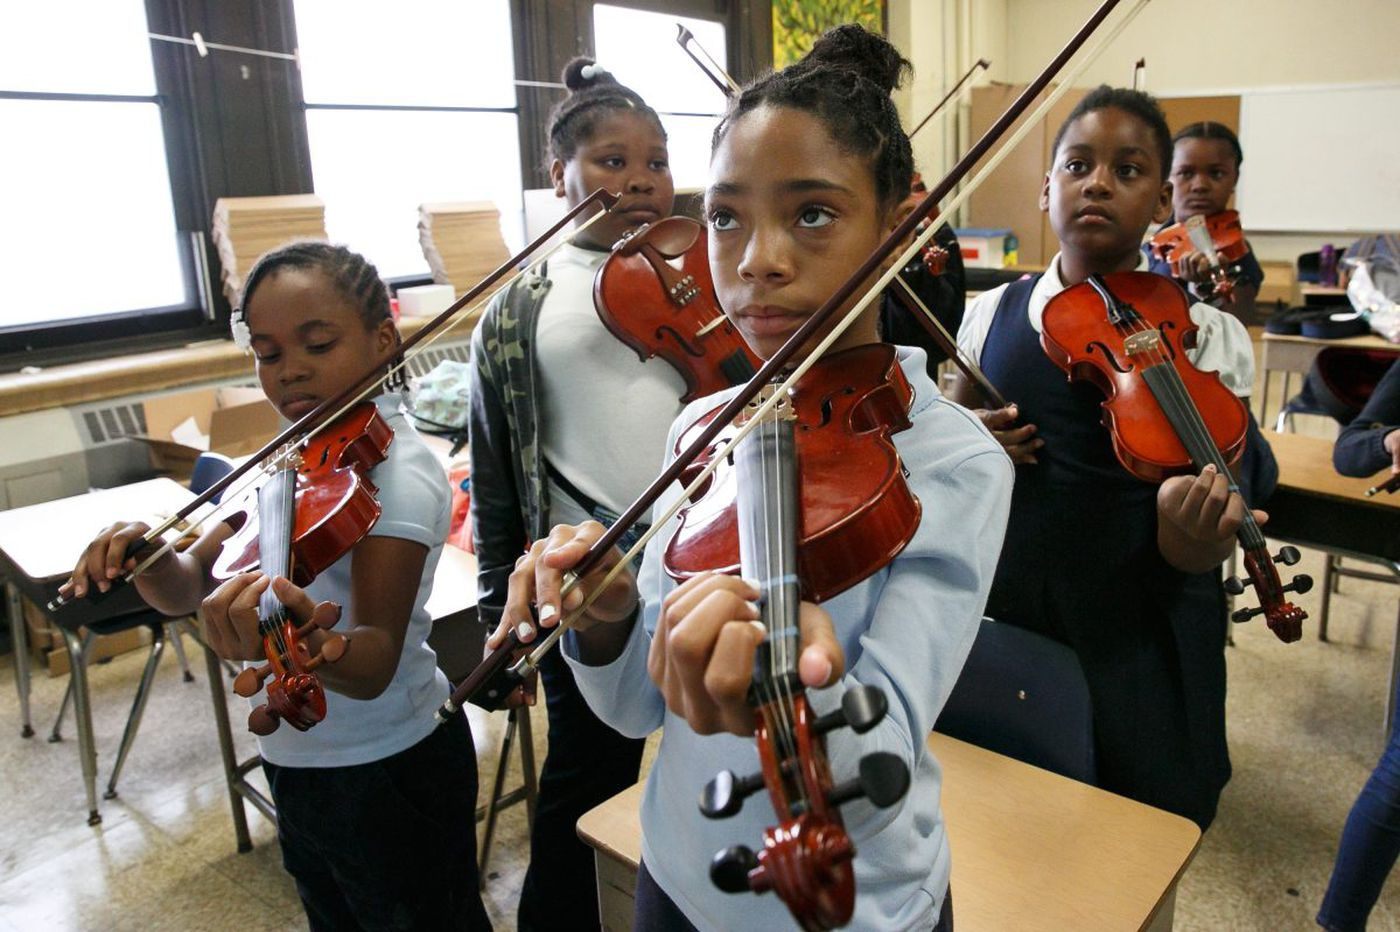 Music in schools gets an assist from Grammy organization